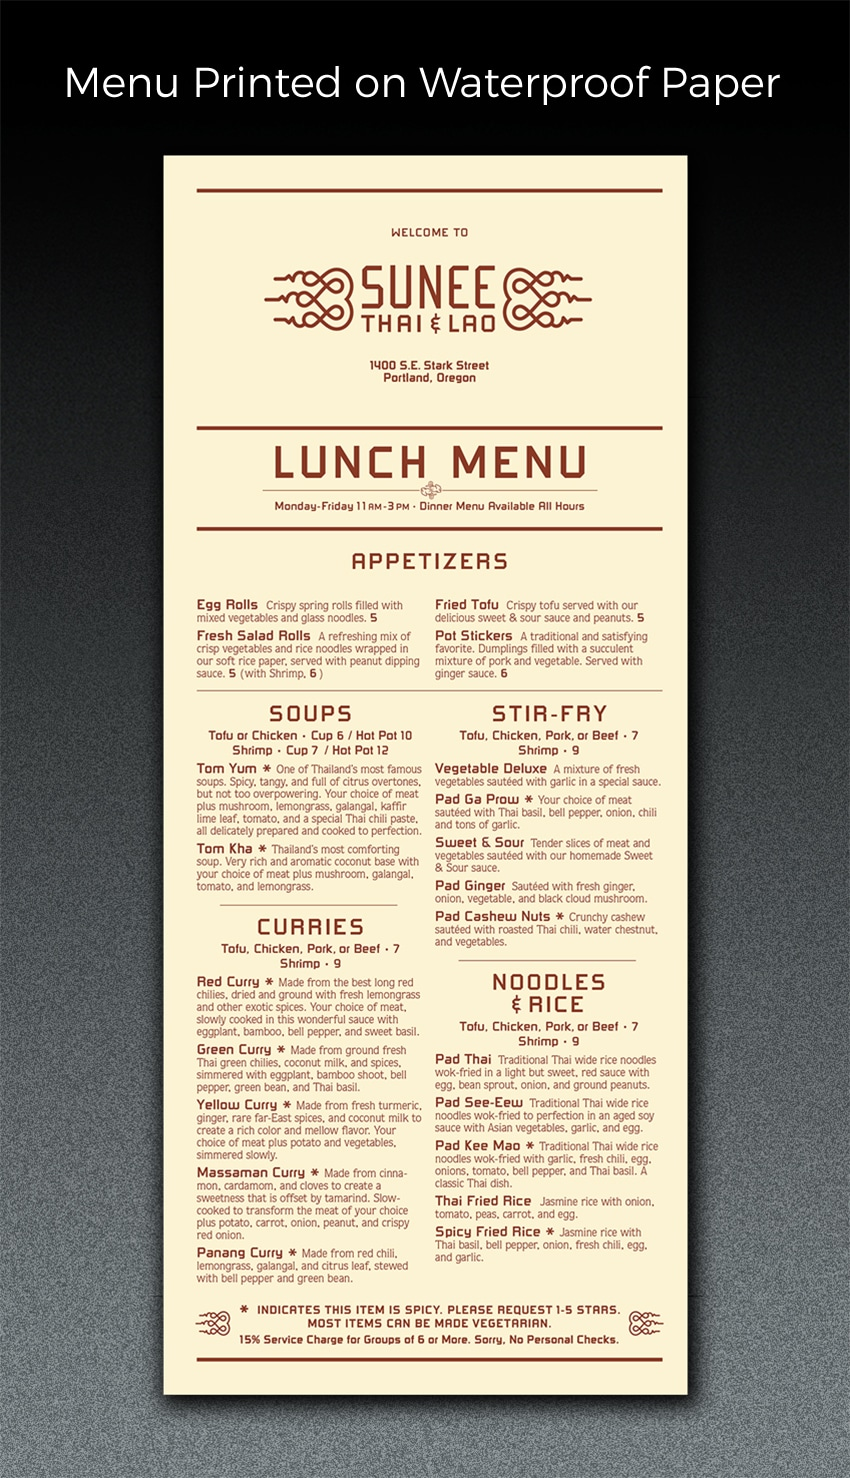 menu printed on waterproof paper